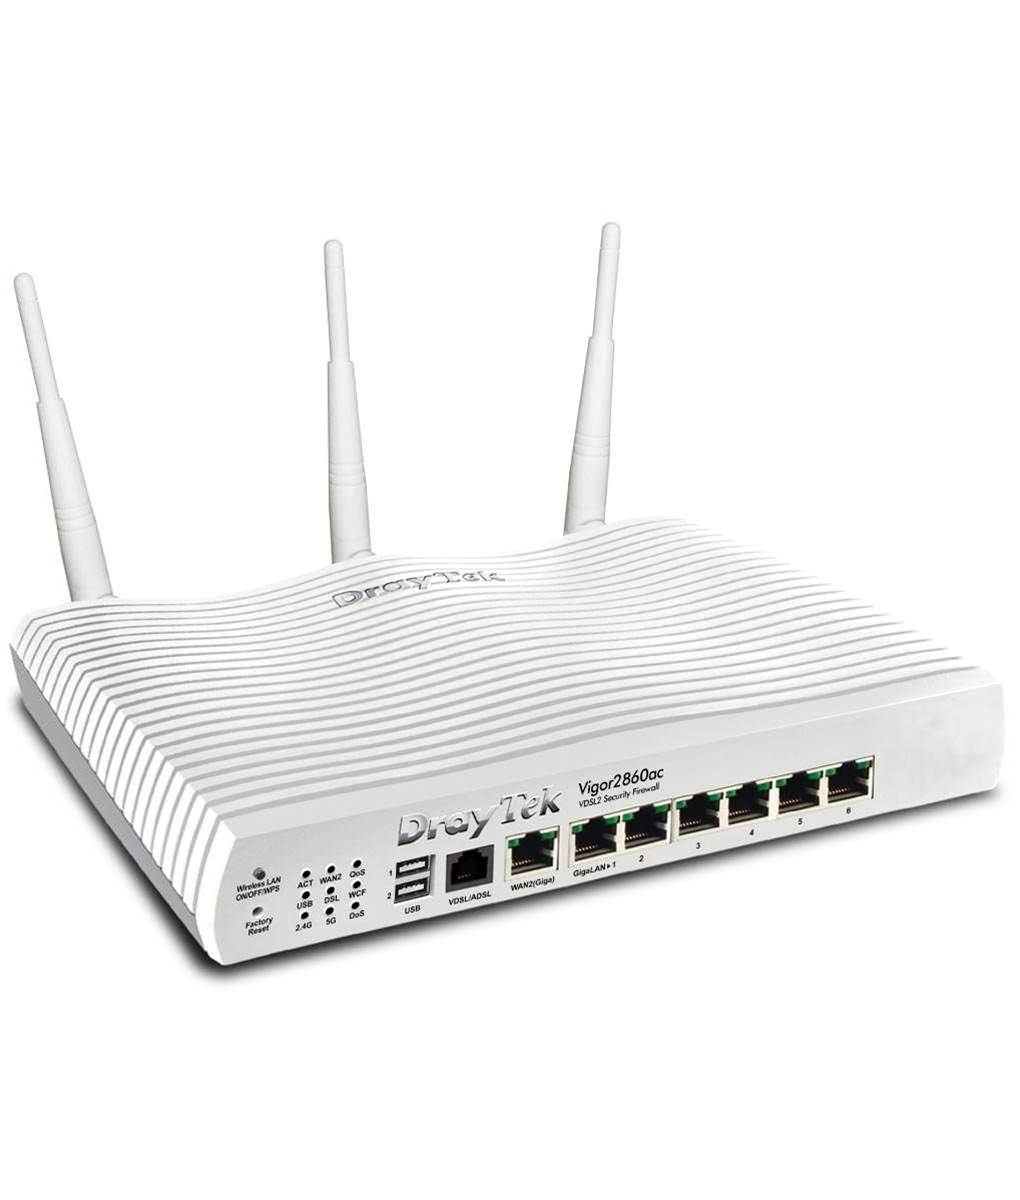 Review: DrayTek Vigor 2860ac VDSL2 Security Firewall